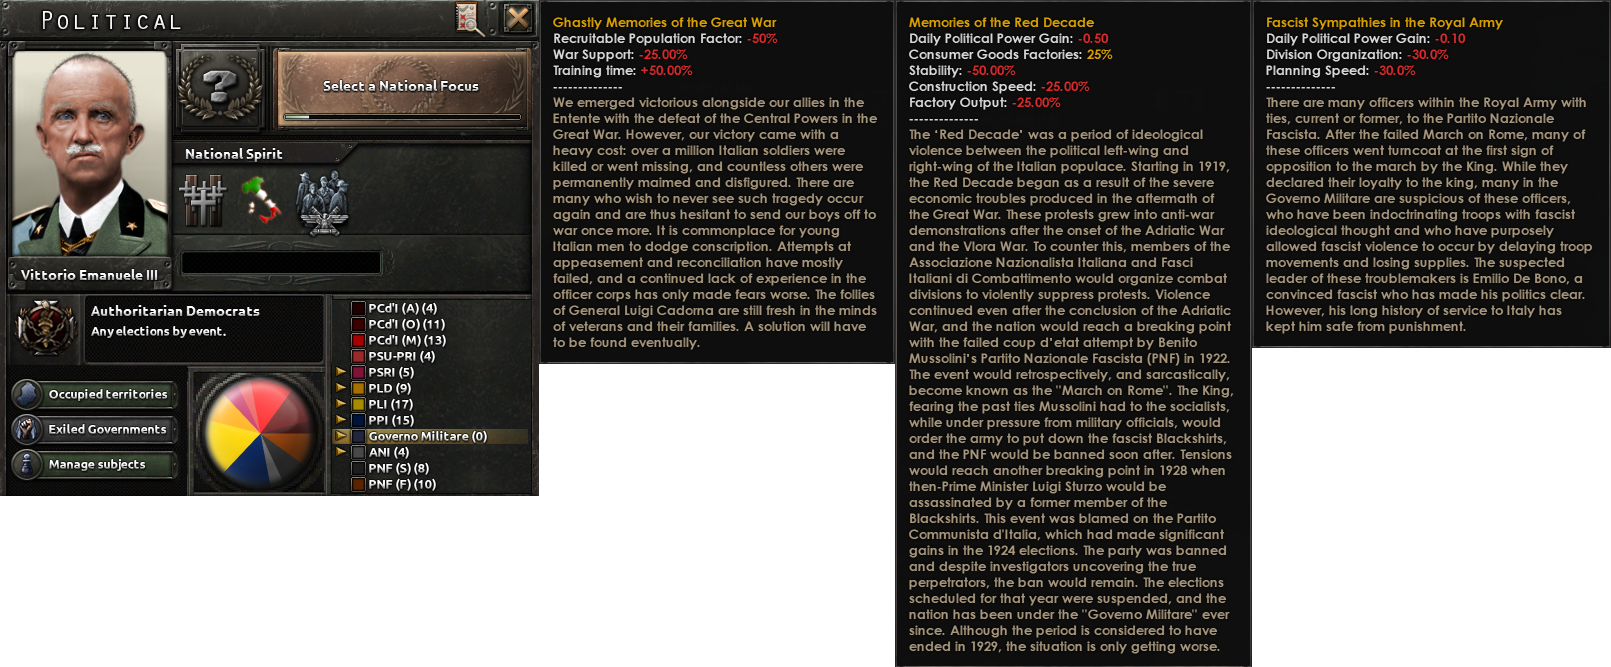 Spartakus - World in Revolution mod for Hearts of Iron IV - Mod DB